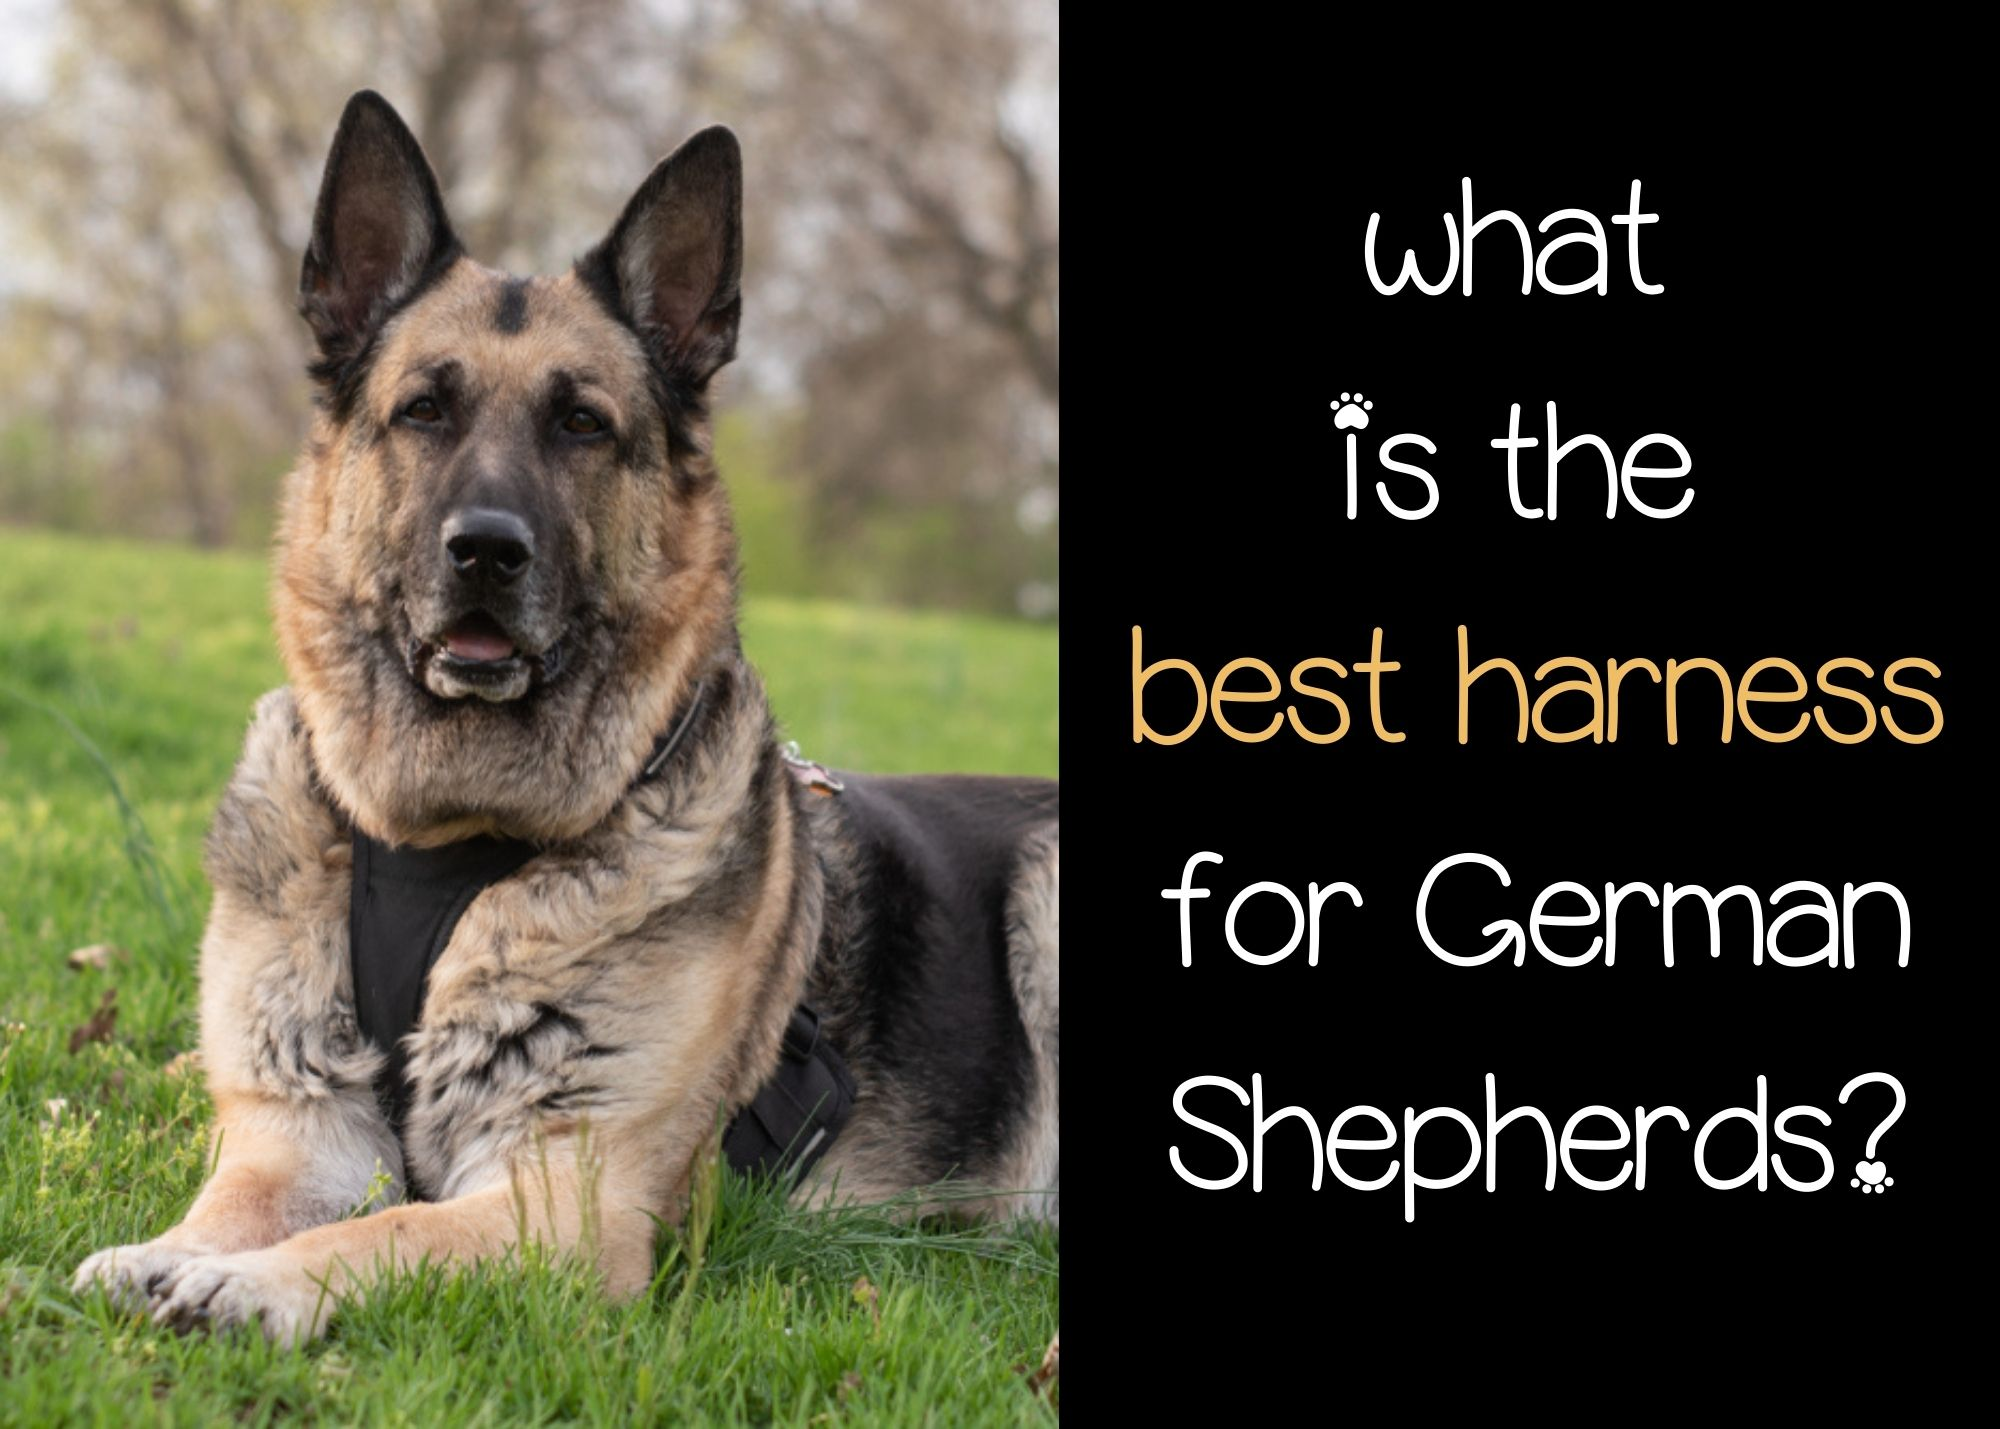 what is the best harness for German Shepherds